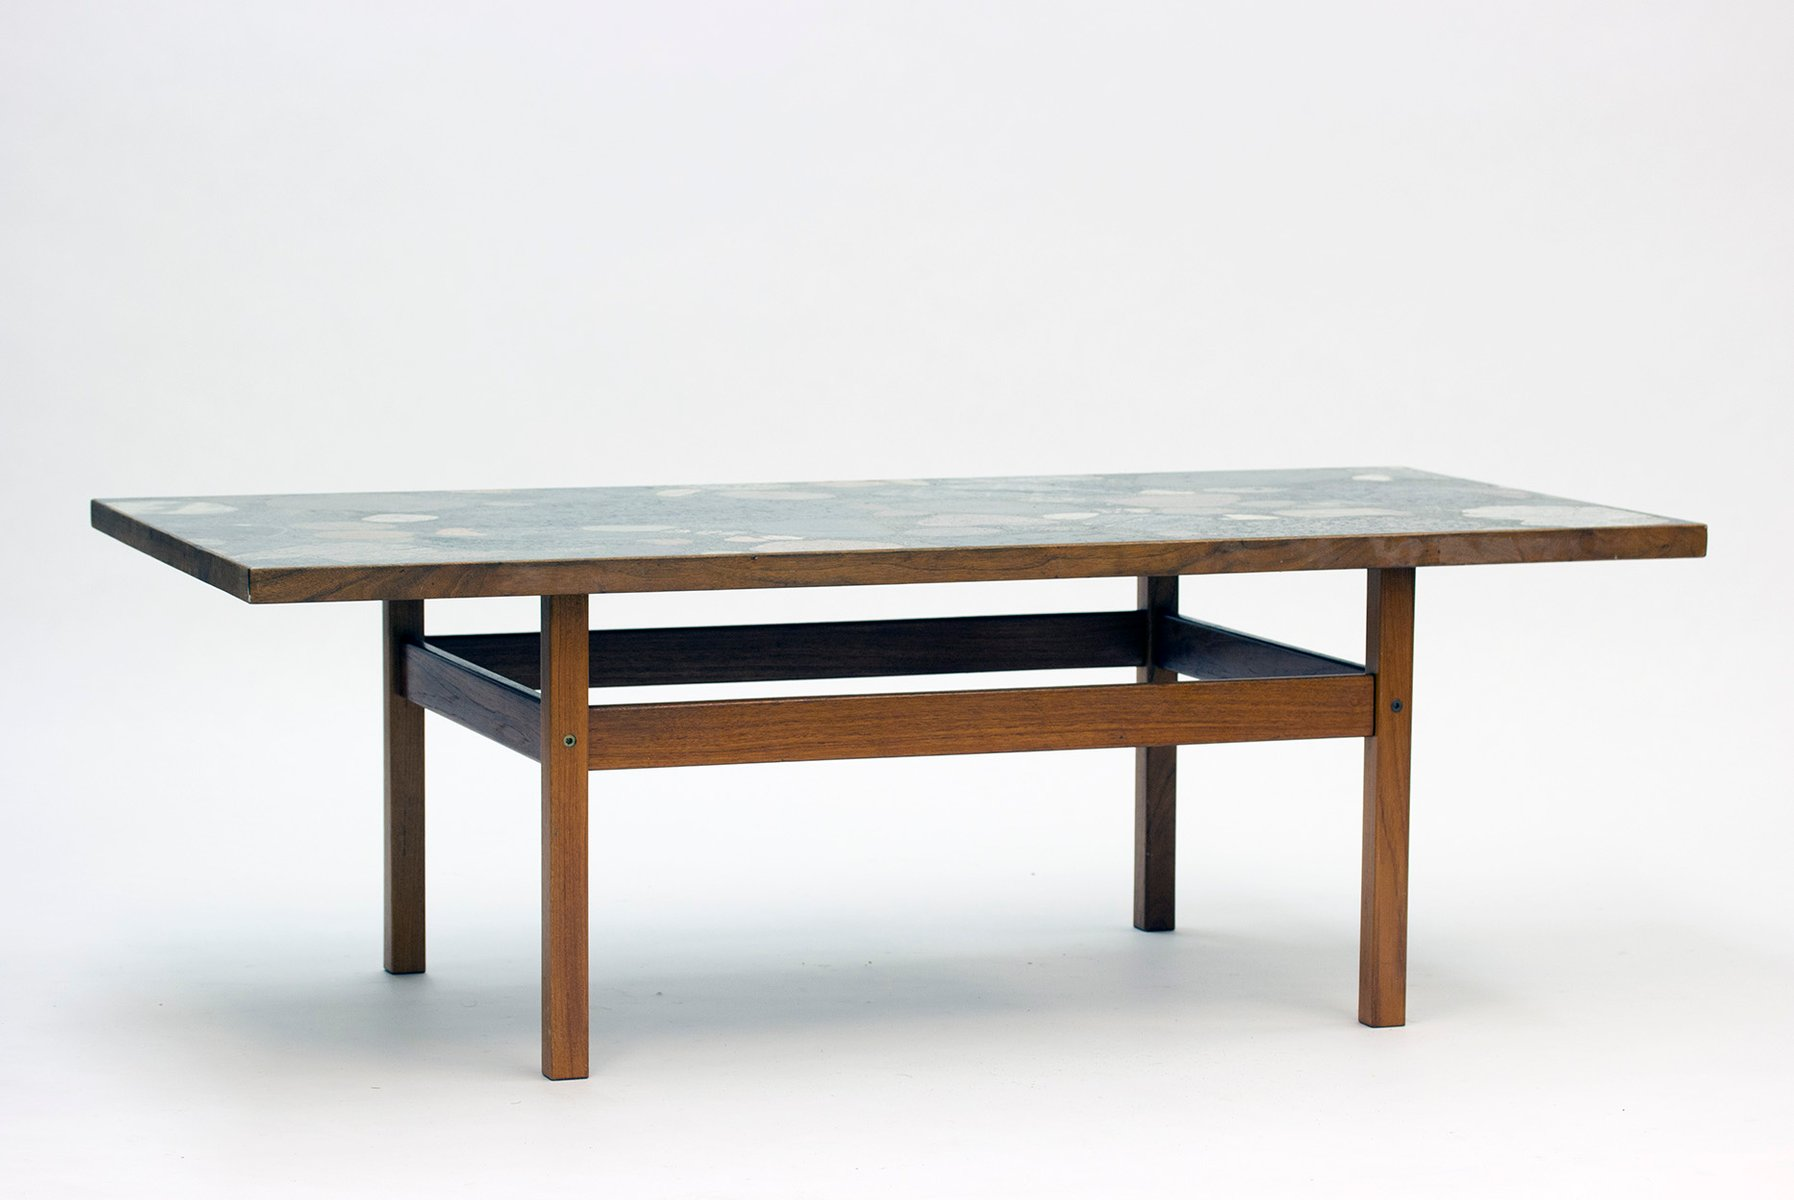 Norwegian teak coffee table with stone top by erling viksj 1970s for sale at pamono Stone coffee table top